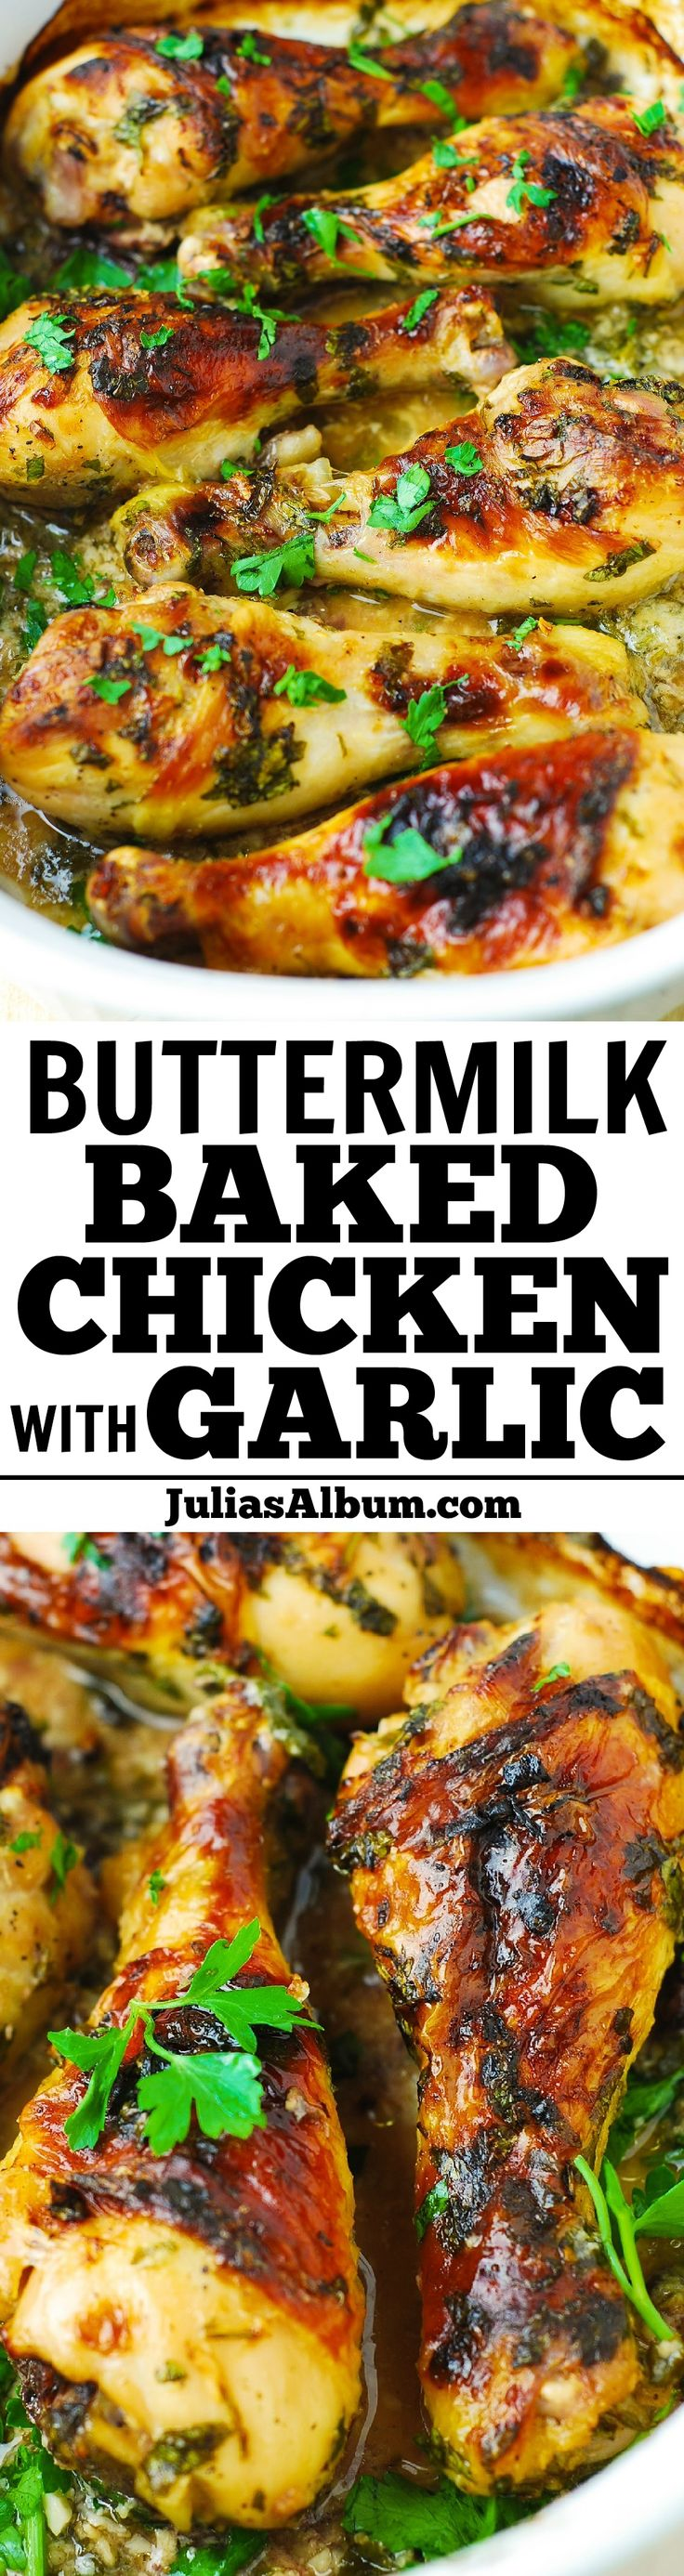 Buttermilk Baked Chicken - crispy on the outside, and the meat is moist and flavorful! Healthier way to cook chicken!